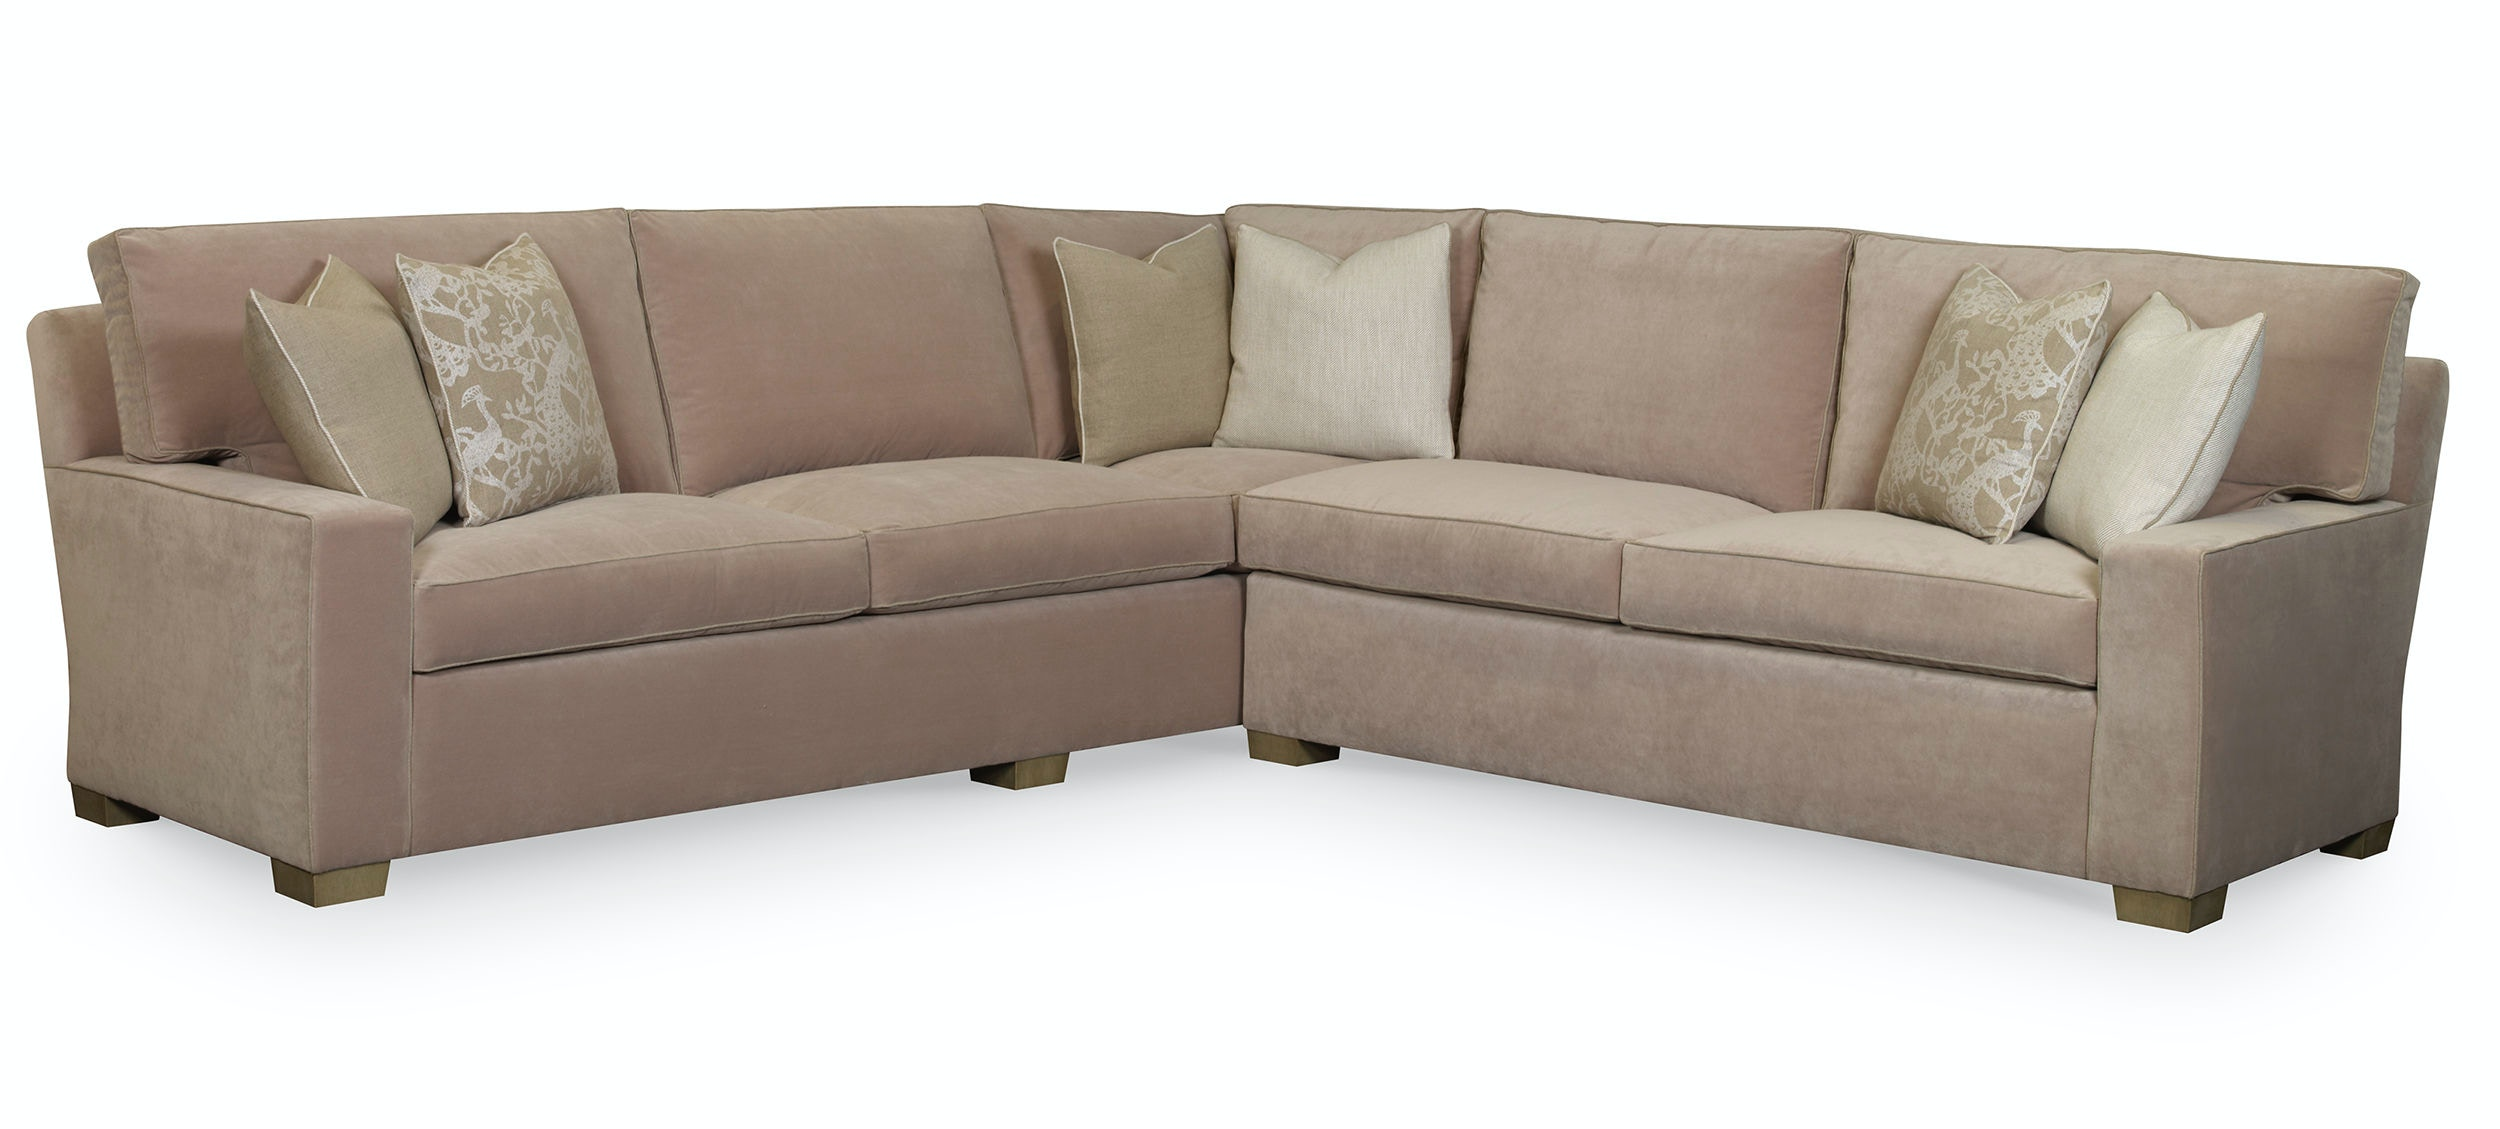 Welted Frame, Seats, Back Pillows, And Throw Pillows. Michigan Avenue  Sectional (Two U0026 Three Seat Sofas W/Built In Corner) 2622 Sectional EJ  Victor